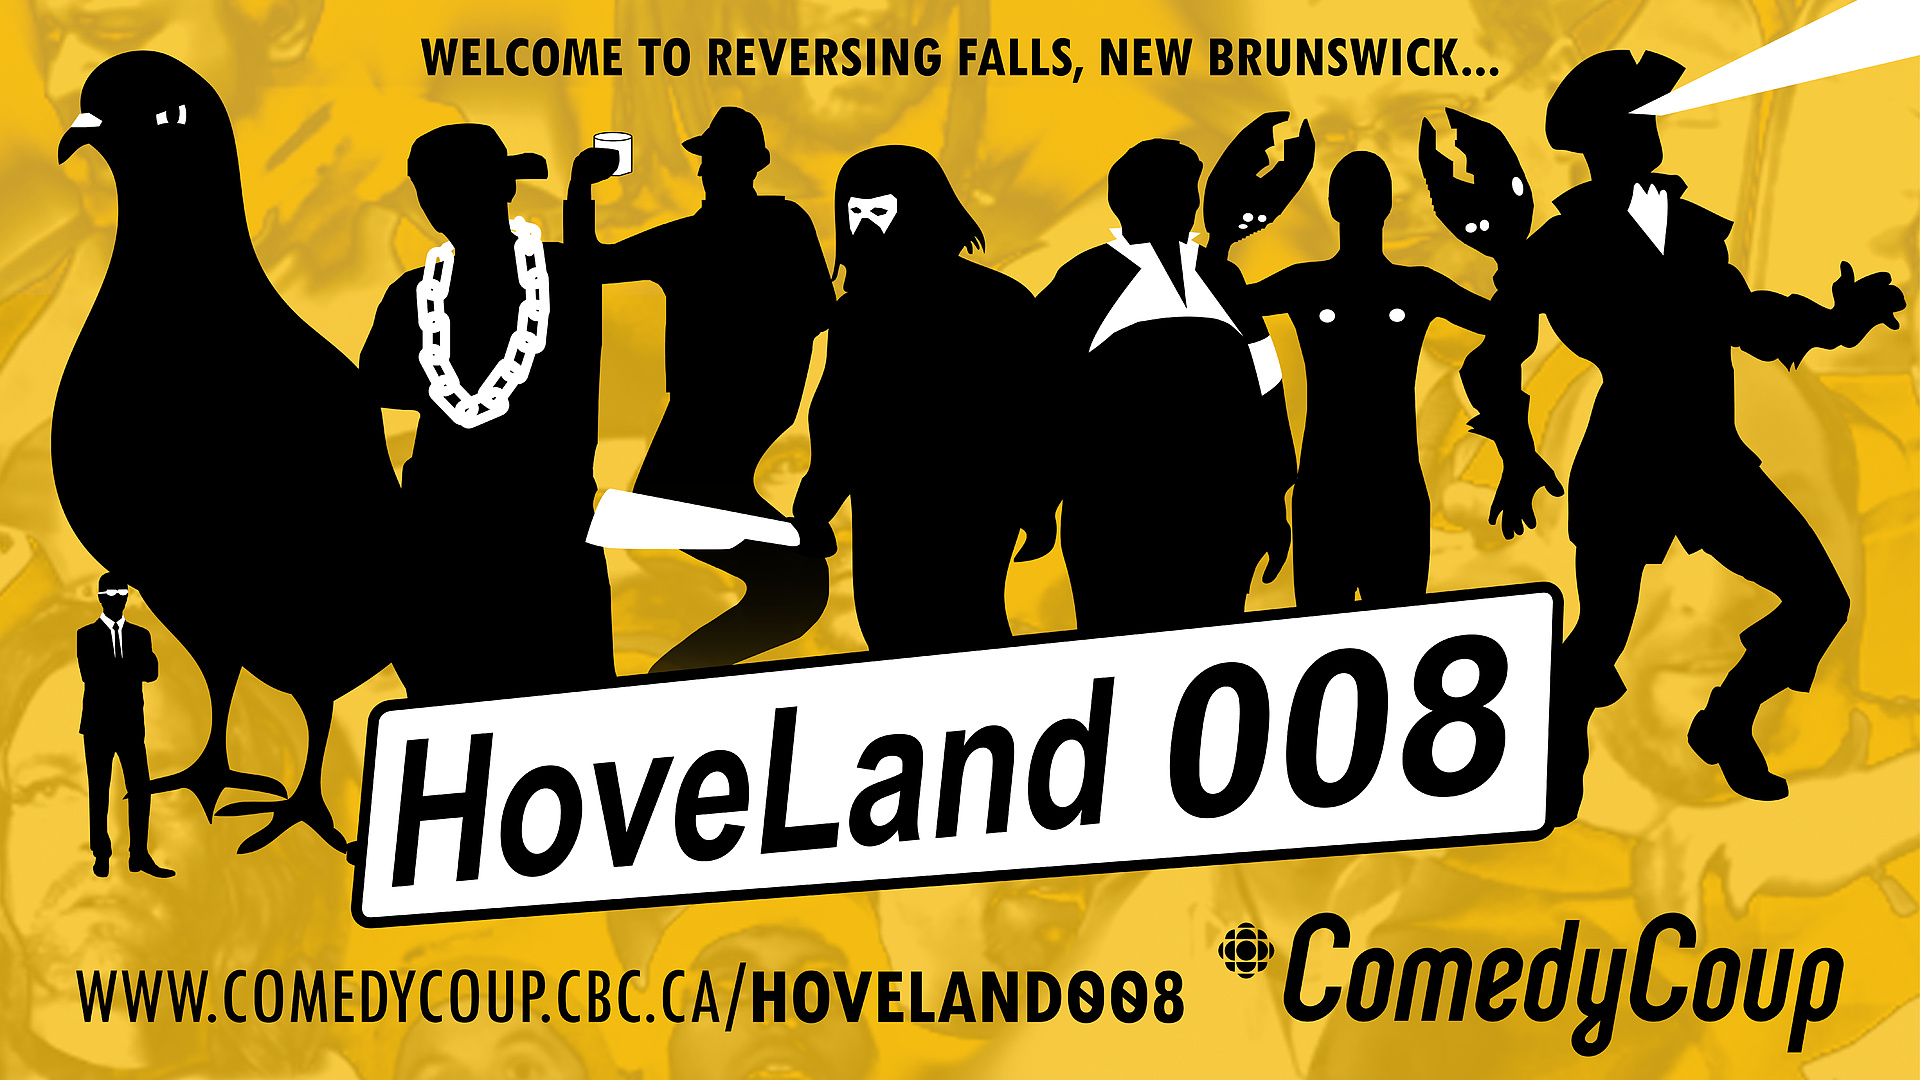 Week 4 Key It: Poster B HoveLand008